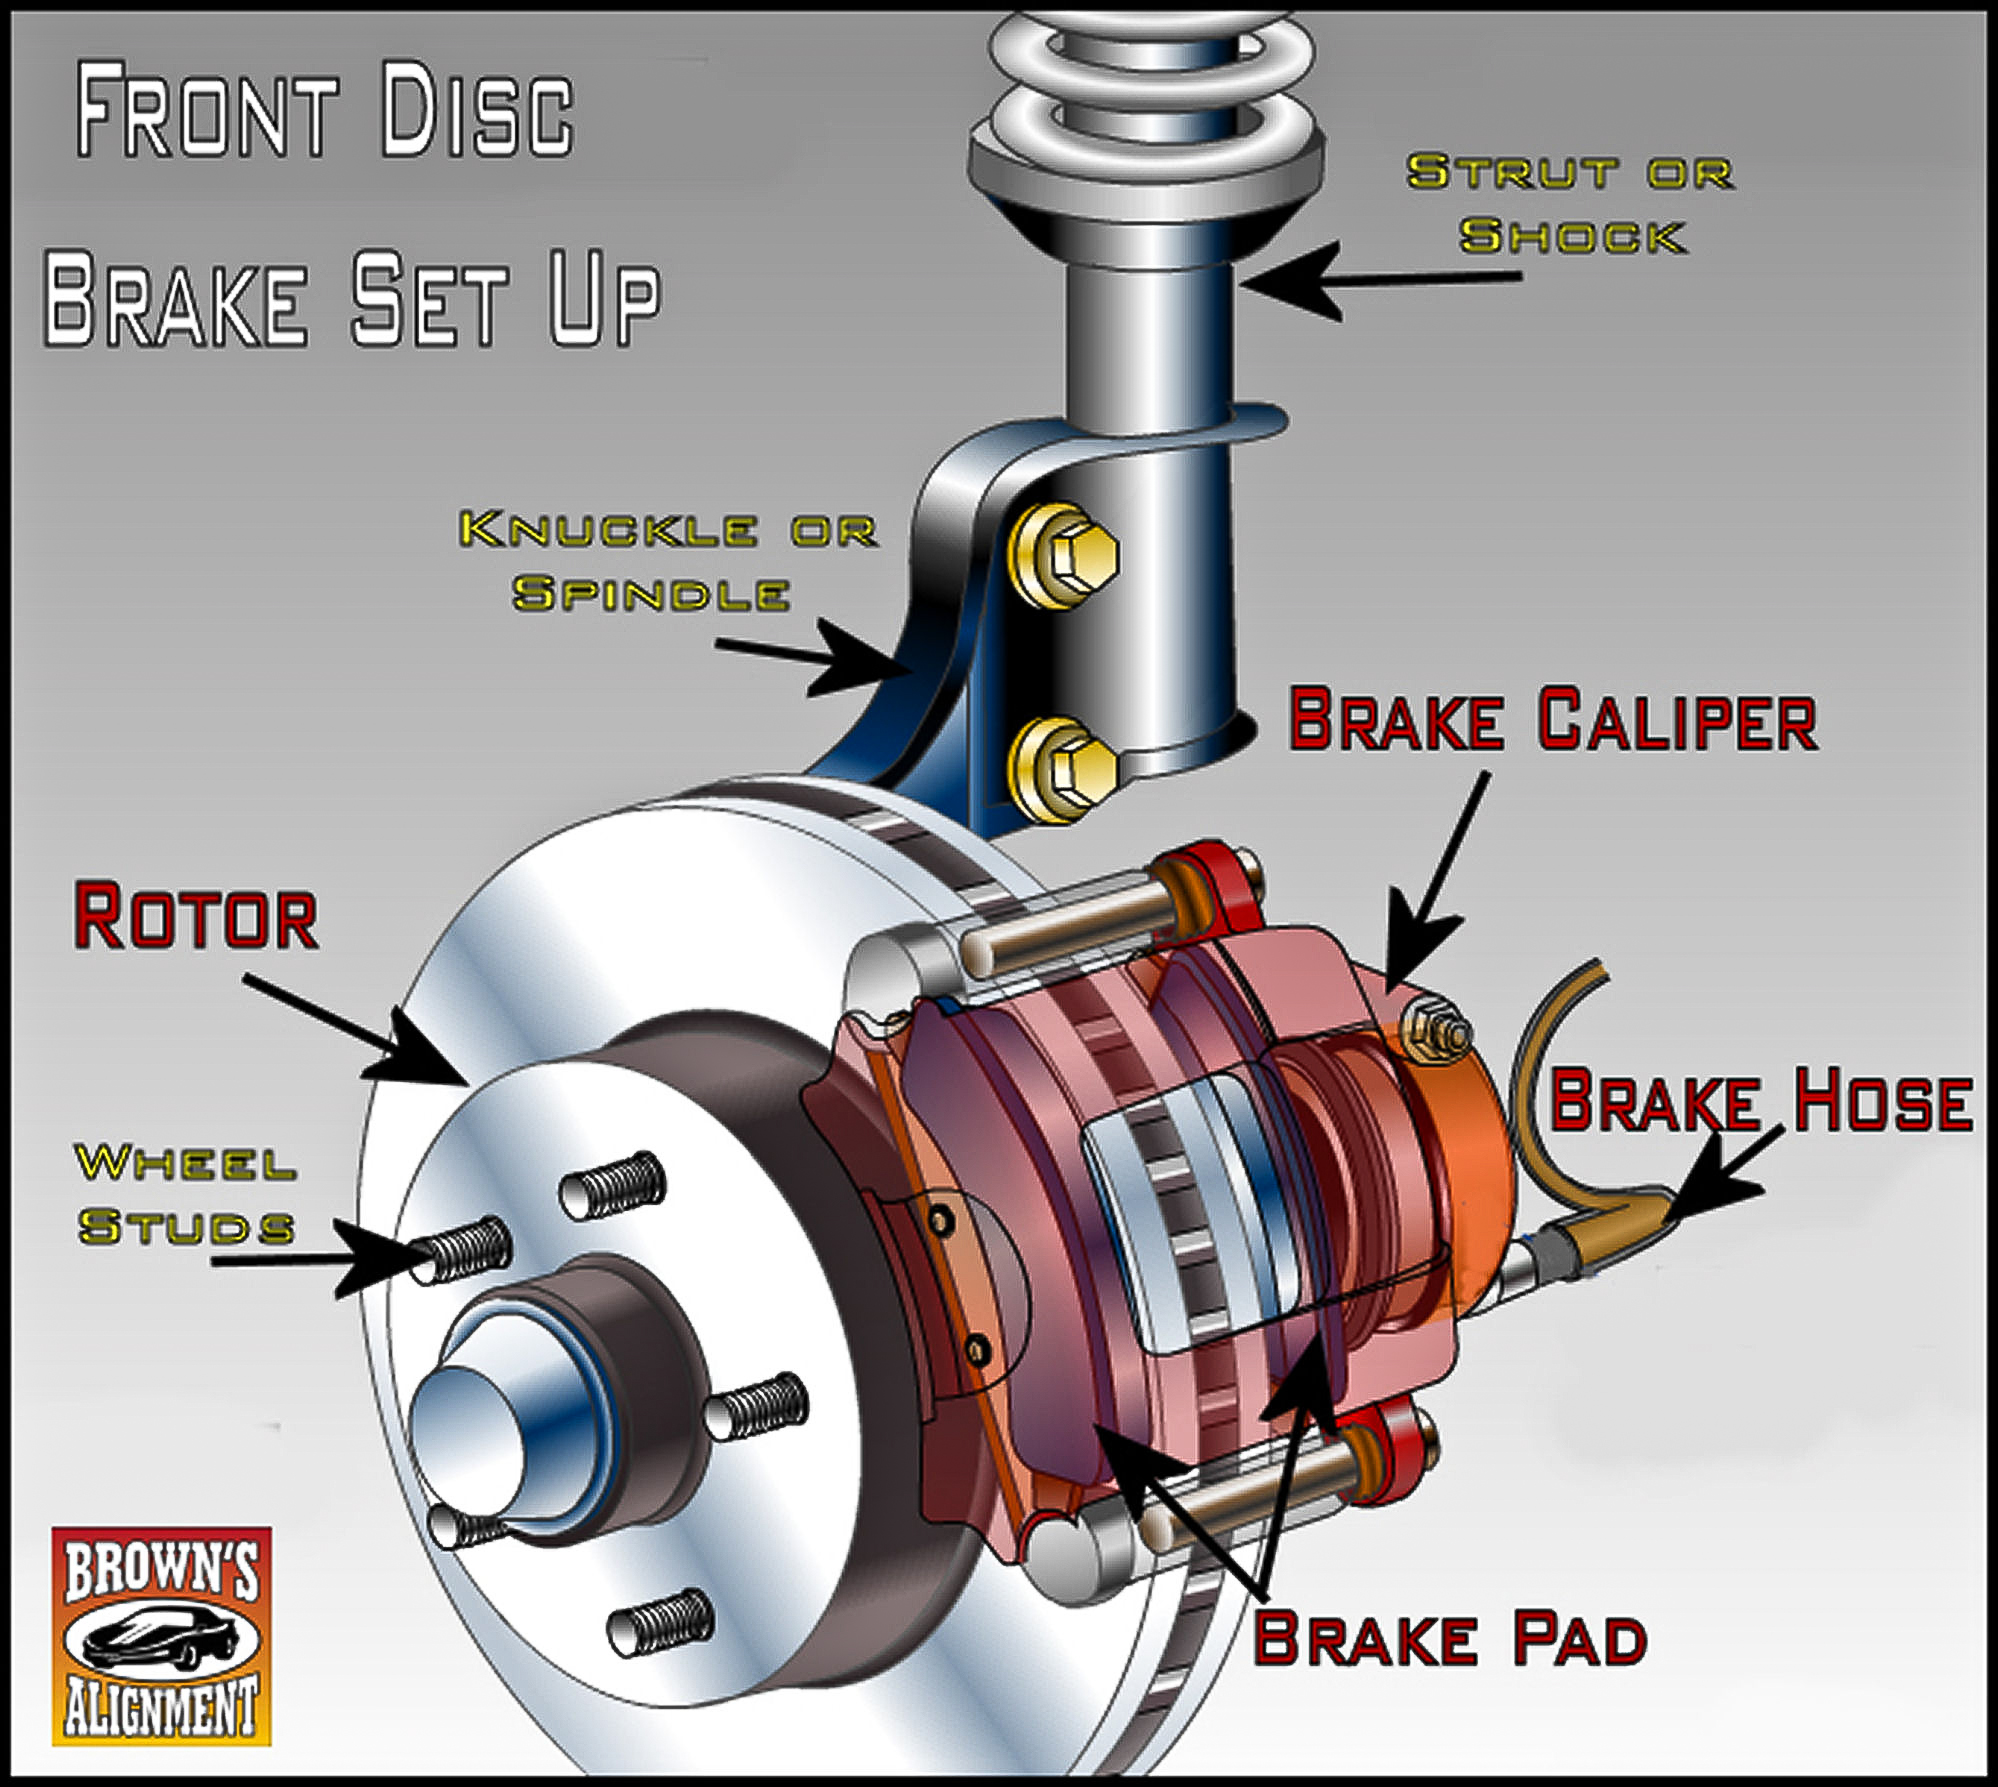 What Parts Are Replaced During A Disc Brake Job